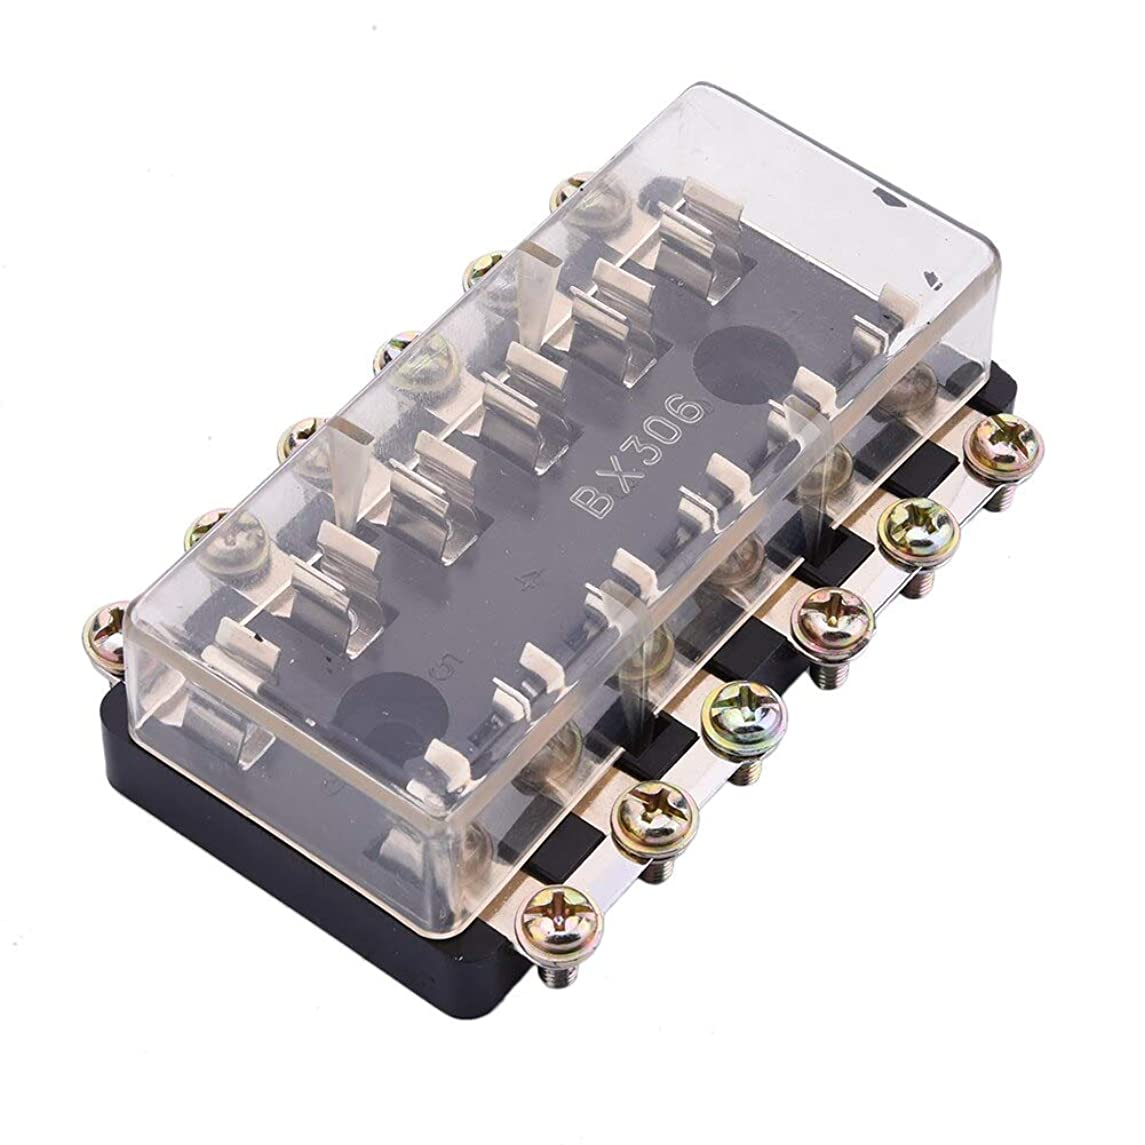 Cacys-Store - Universal 12V 6 Way Fuse Box Block Fuse Holder Box Car Vehicle Circuit Automotive Blade For AGC & JSO Fuses